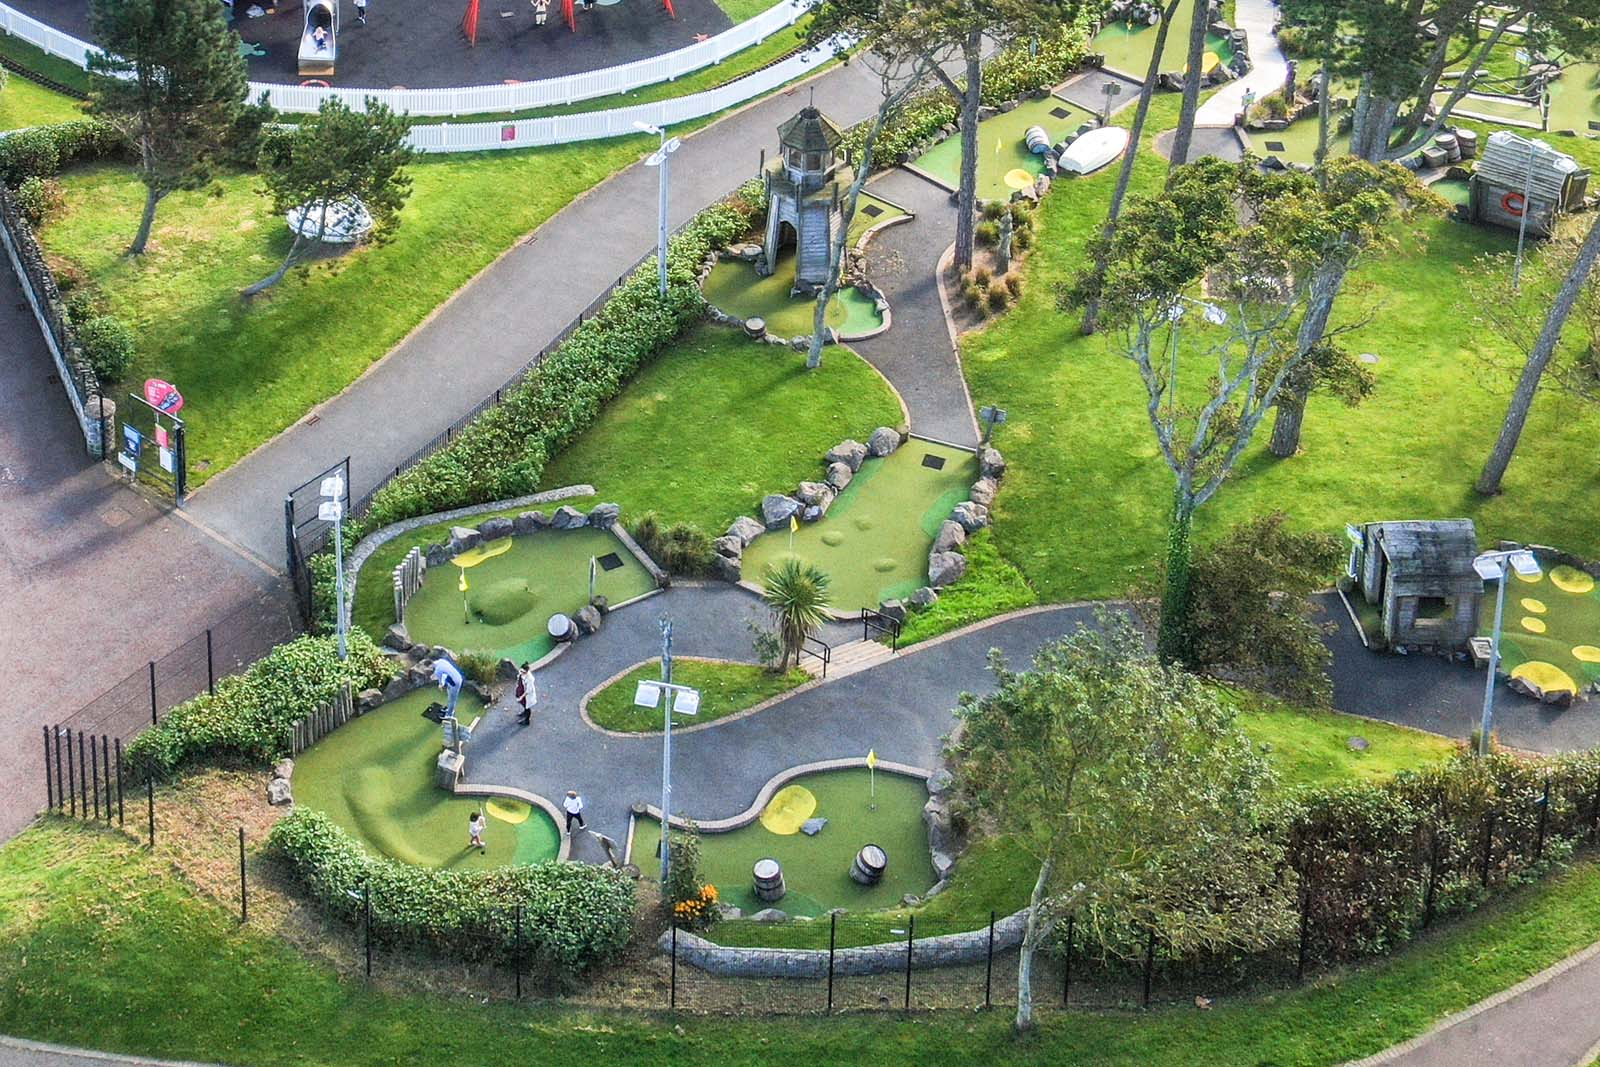 Aerial photo of Bangor Marina and Pickie Fun Park by Bout Yeh drone photography and video production services, Belfast and Northern Ireland - photo 0149-4